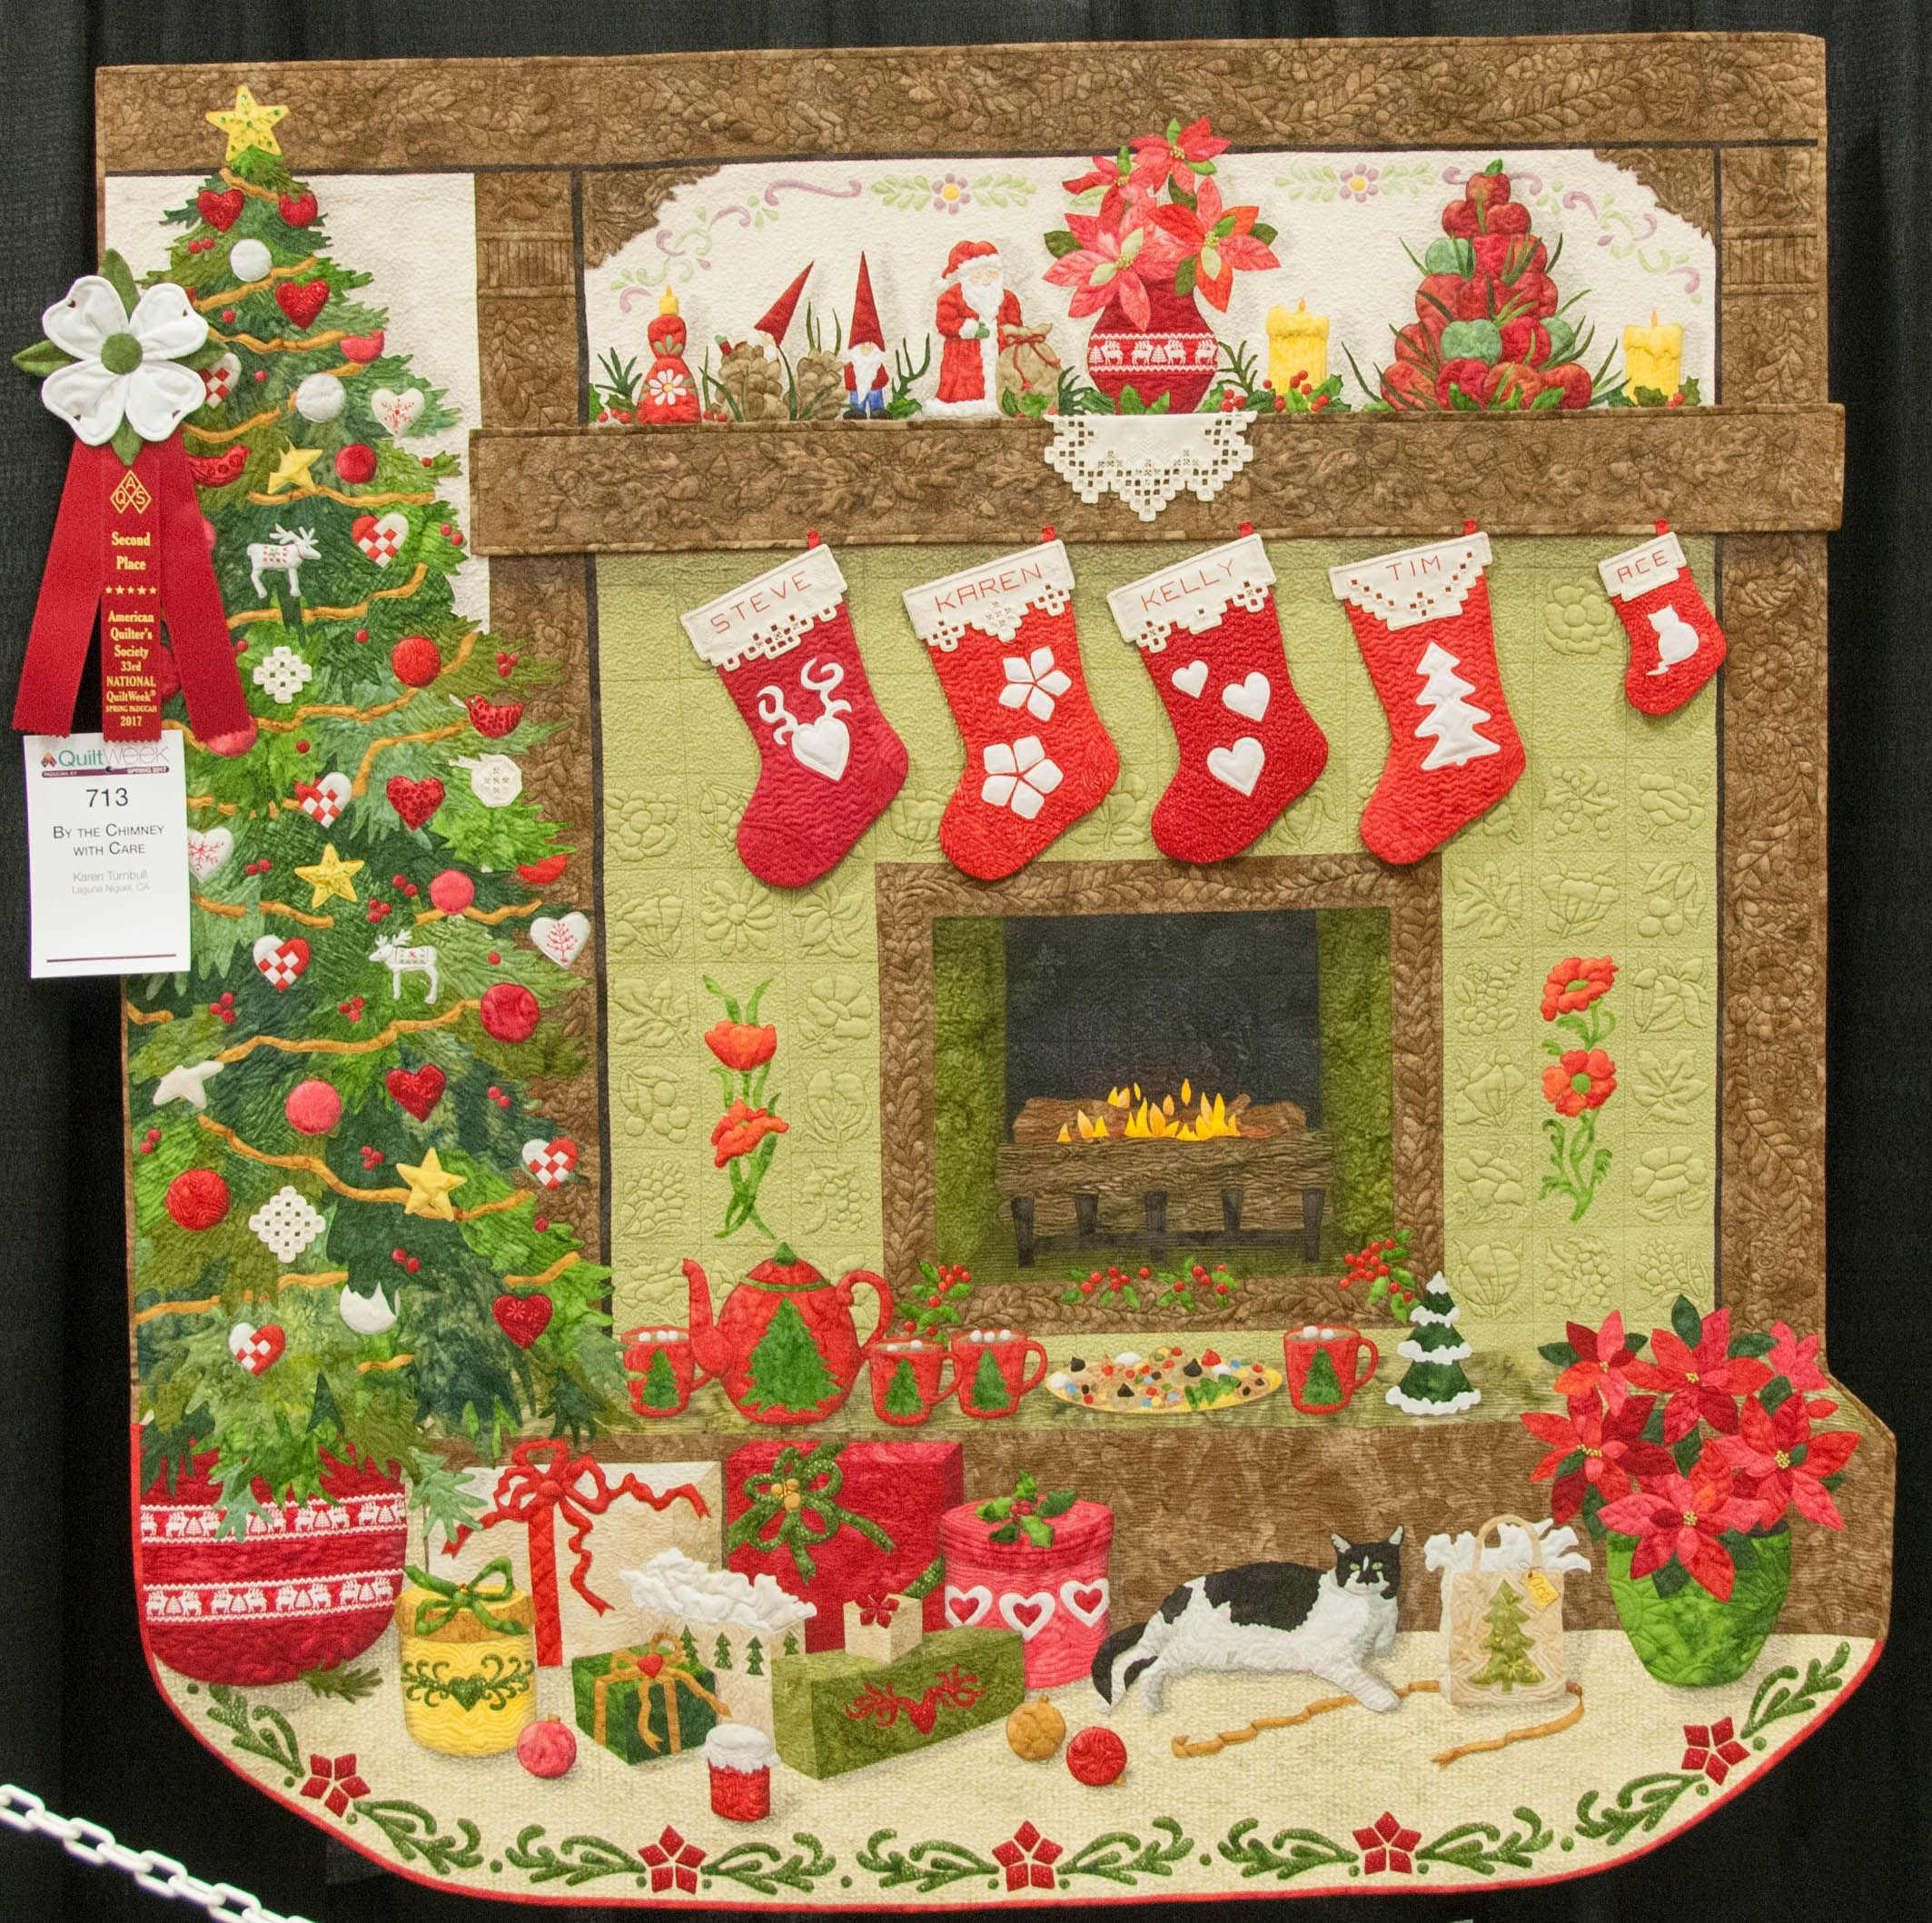 By the Chimney with Care by Karen Turnbull. 2nd place Pictorial ... : daytona beach quilt shops - Adamdwight.com